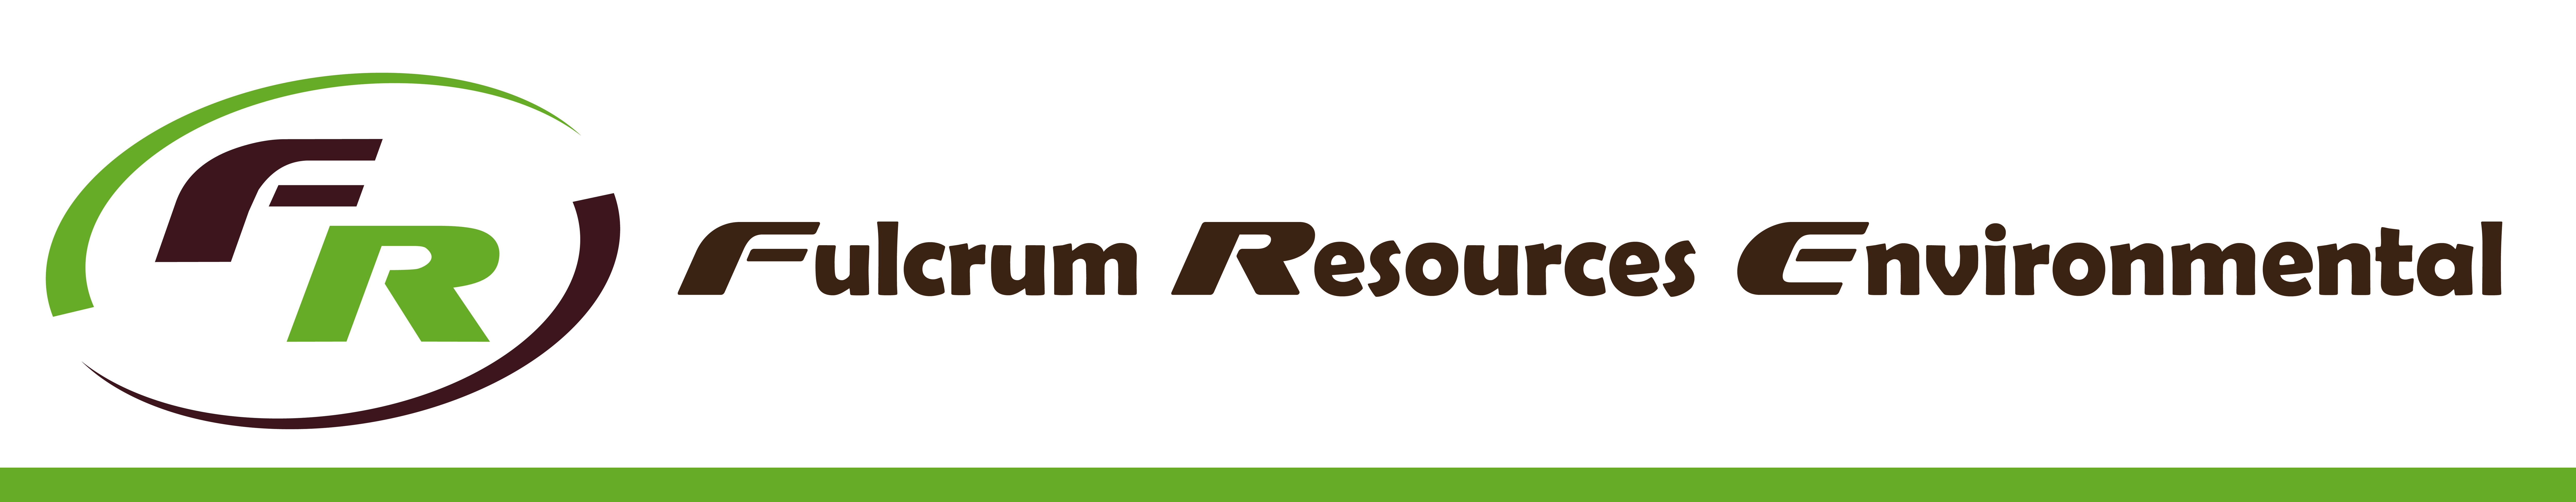 Fulcrum Resources Environmental